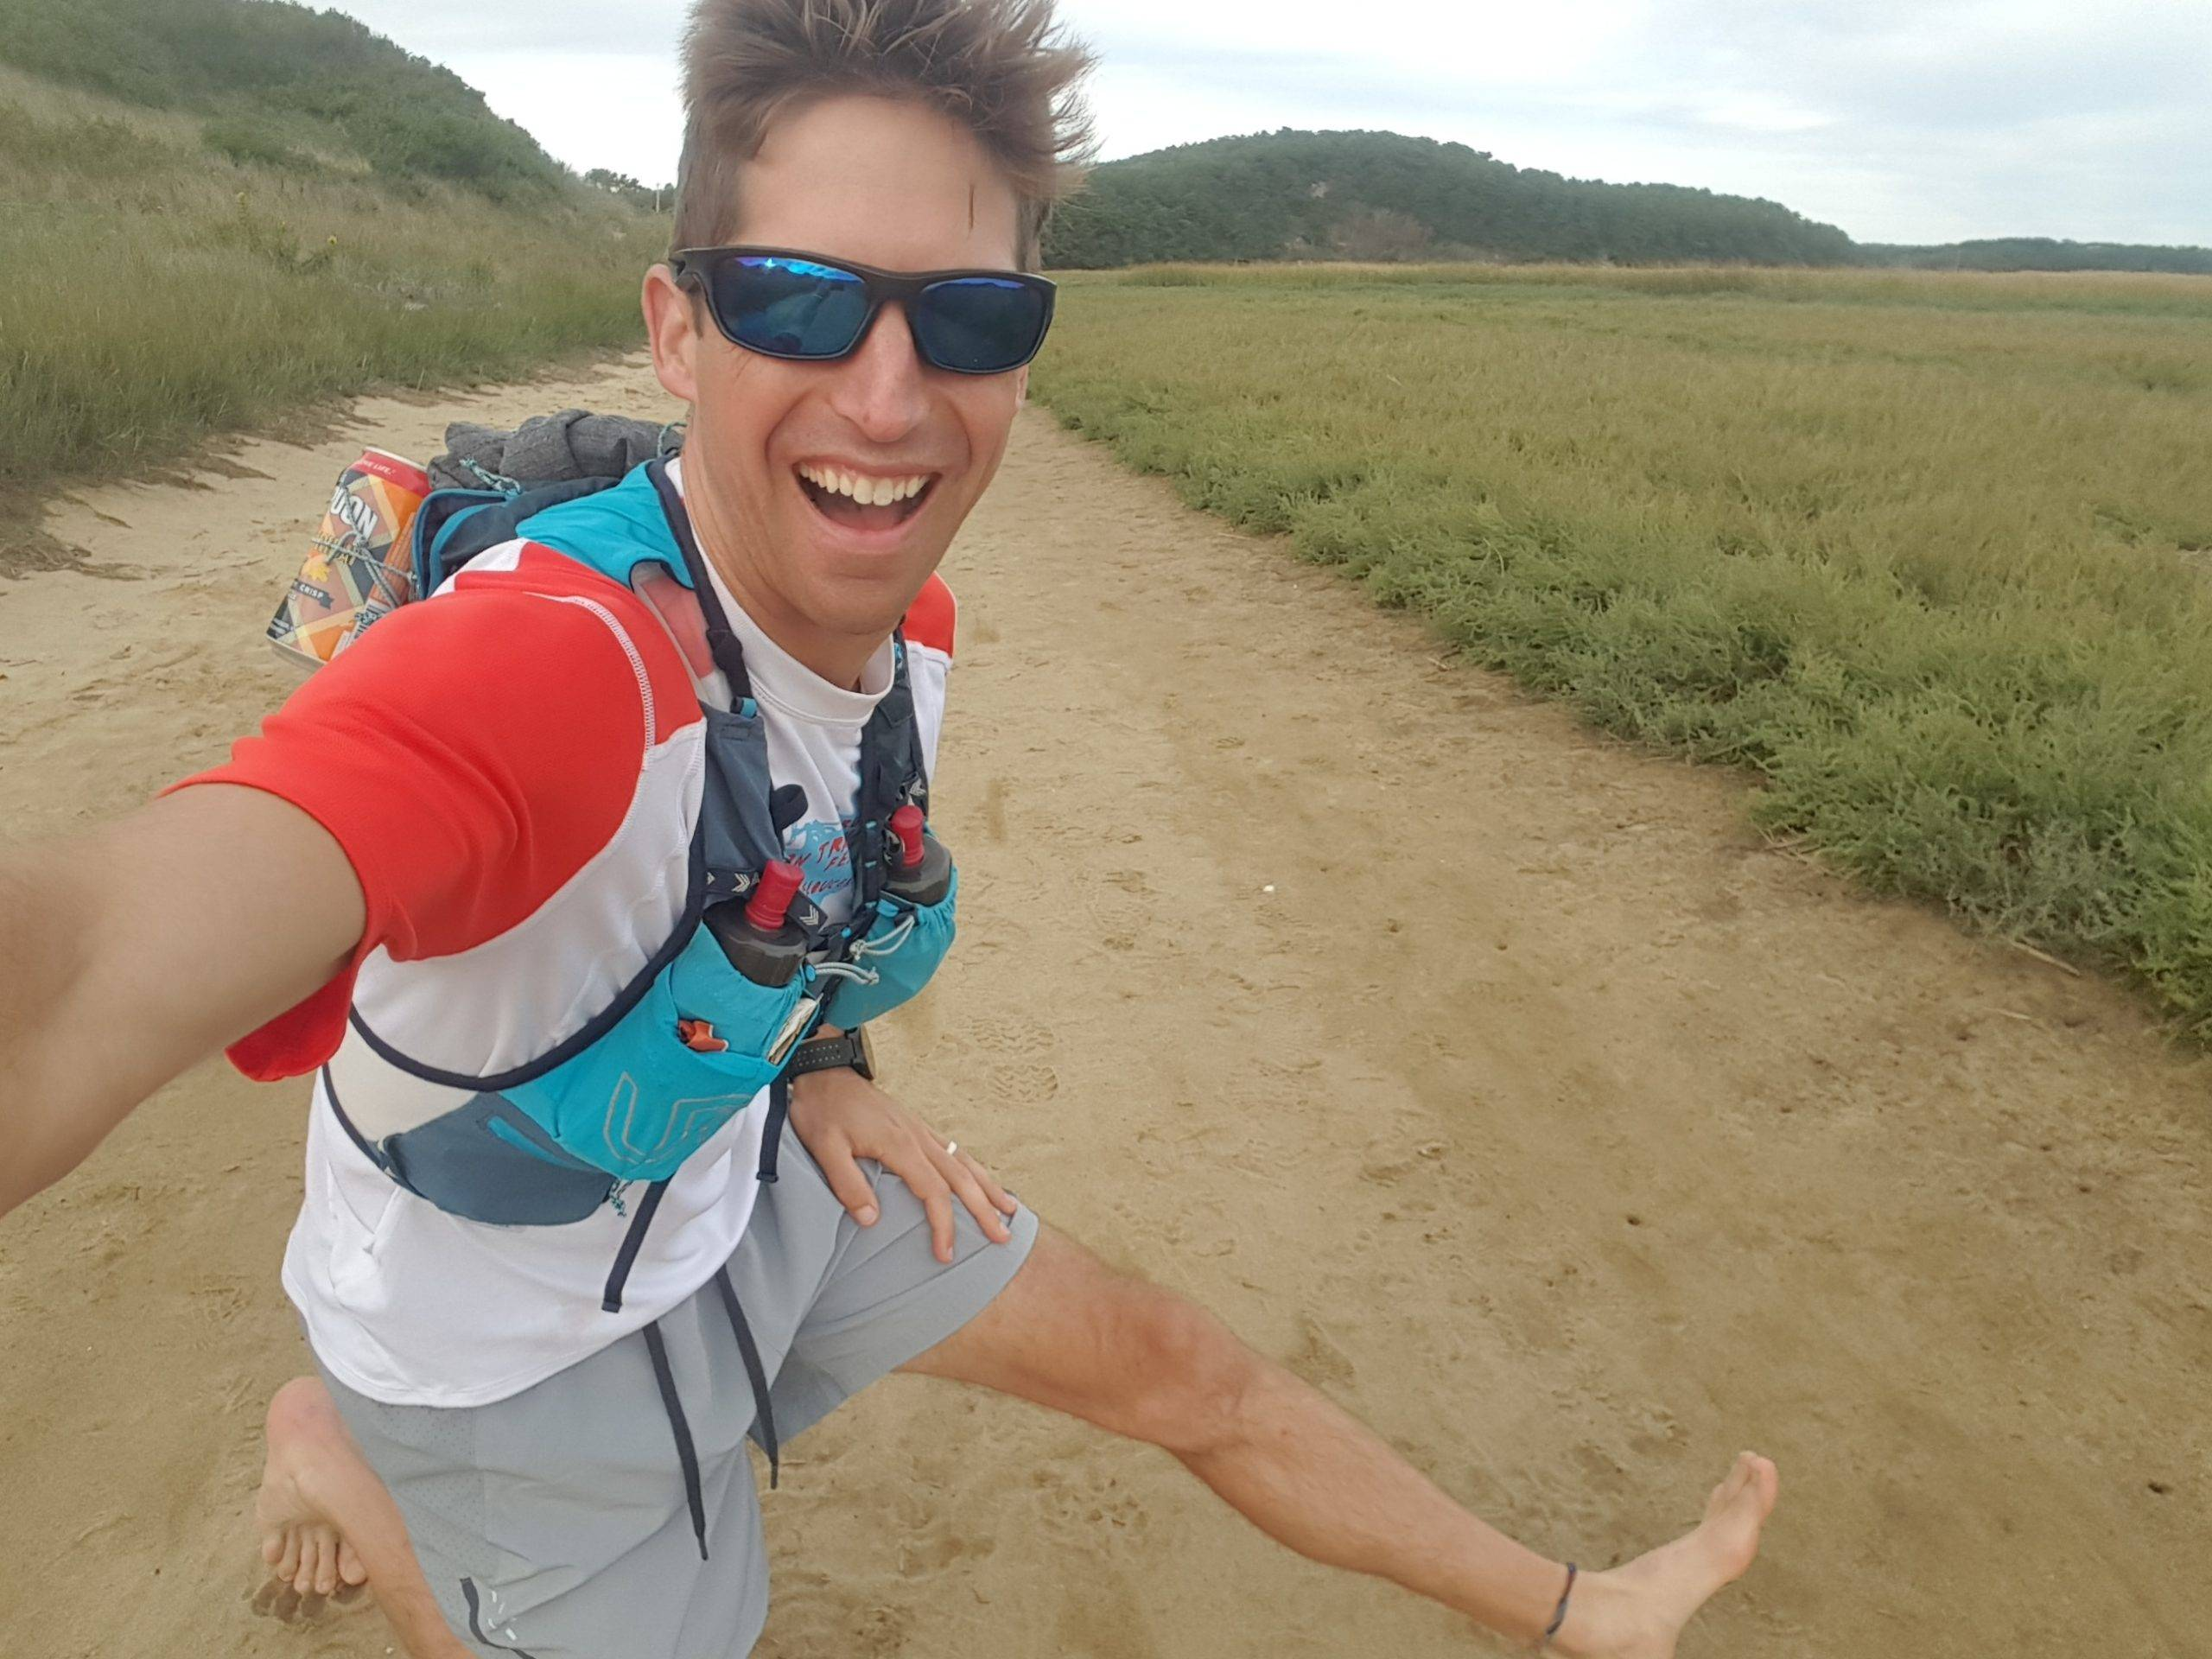 The Ultrarunning Mindset: harnessing your good, bad, and neutral thoughts to work in your favor.